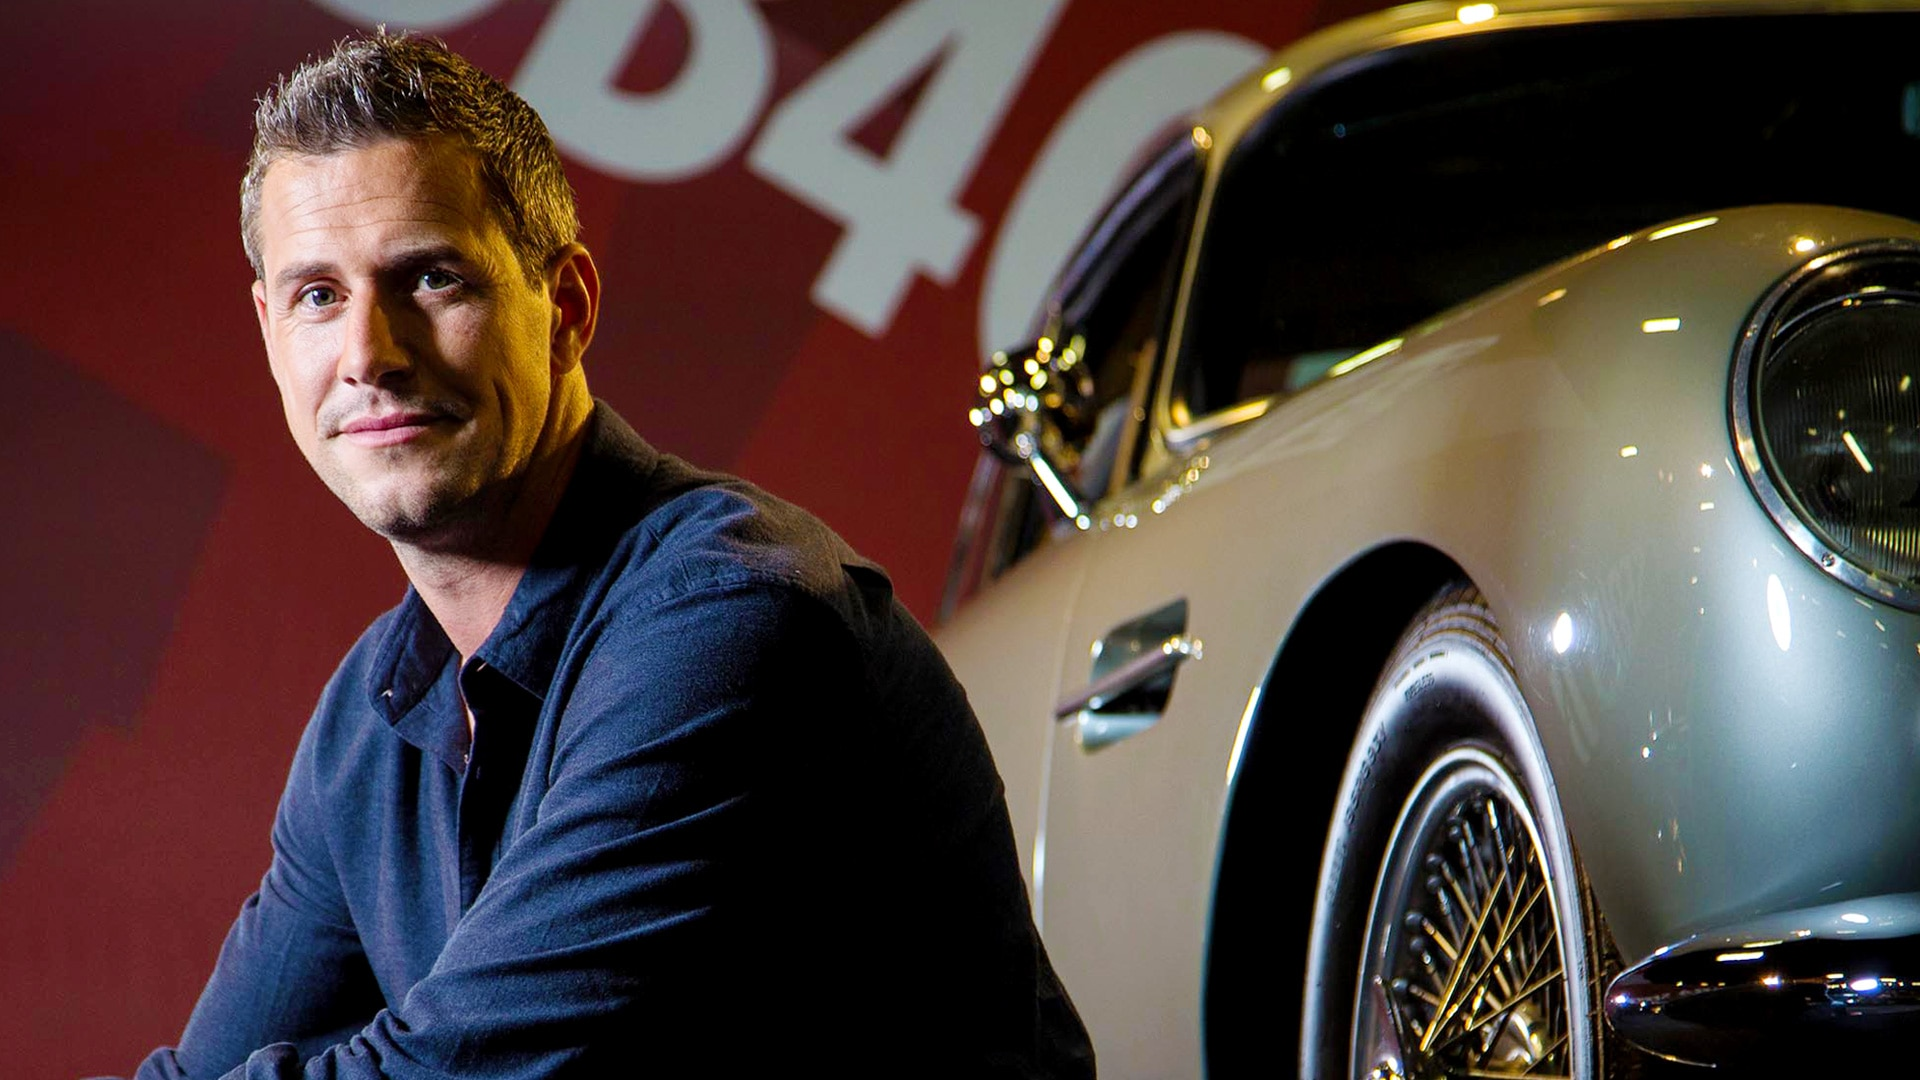 World S Most Expensive Cars Tv Programme Cars Image 2018